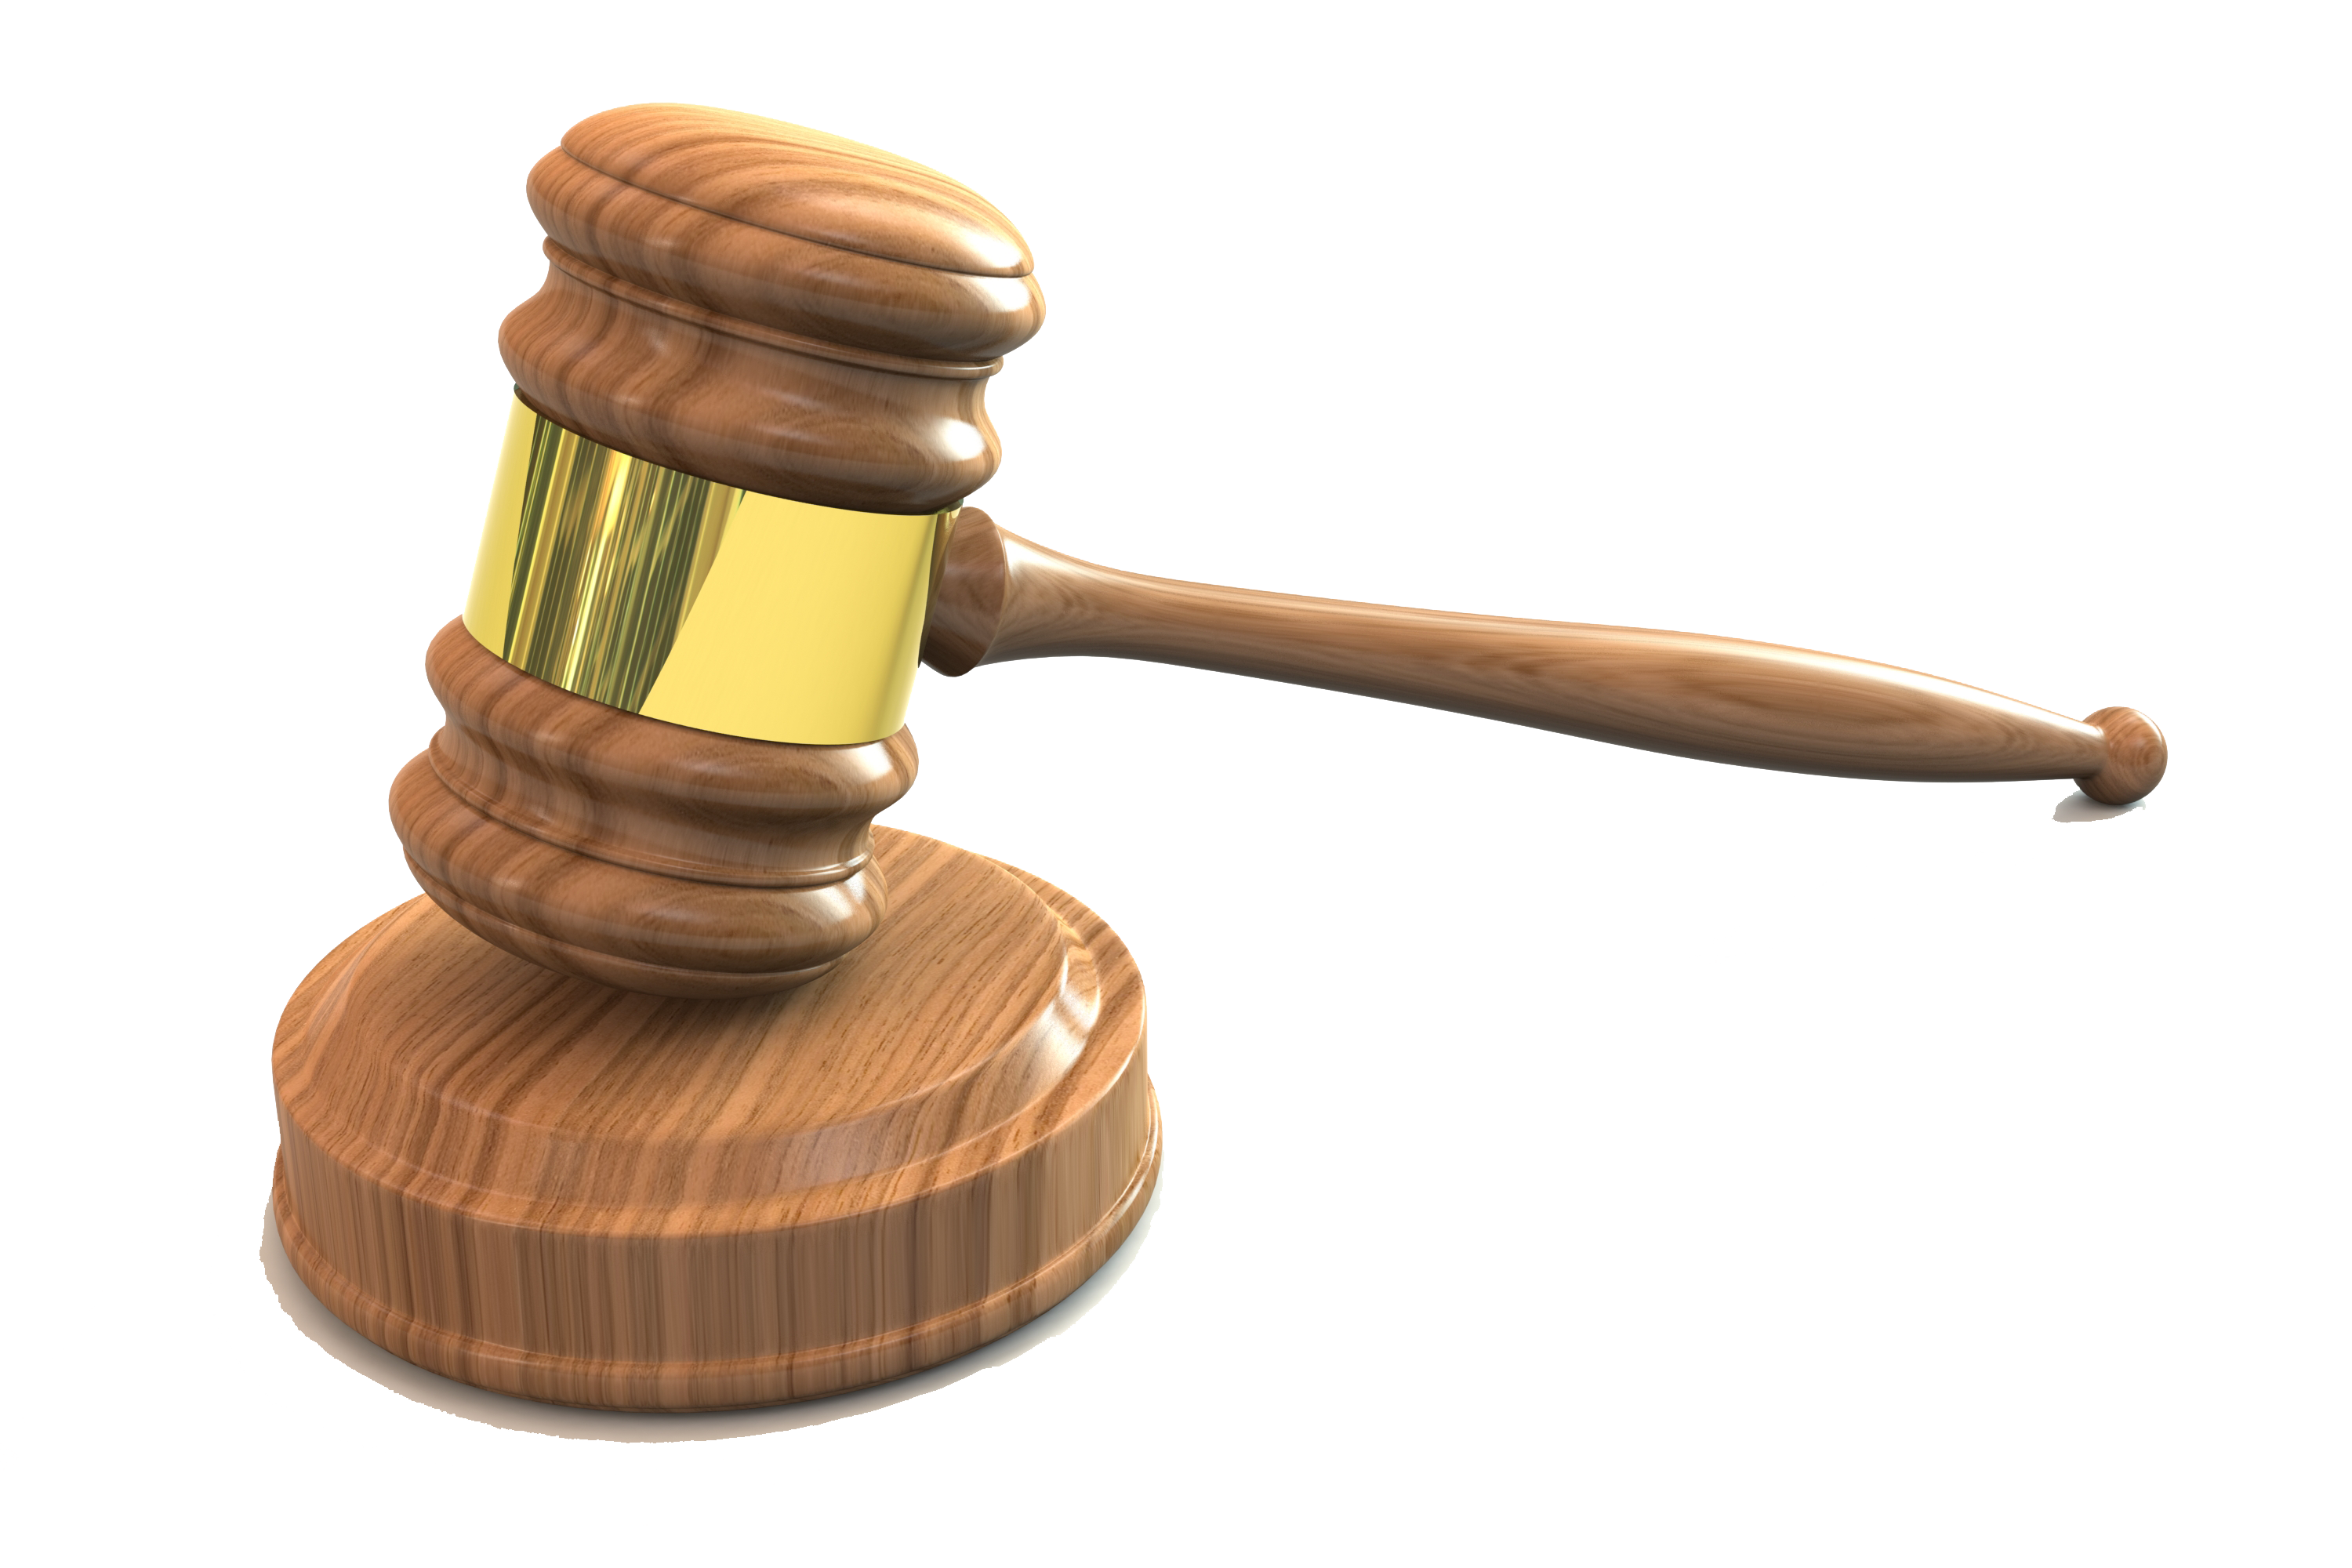 Law Hammer PNG HD Quality